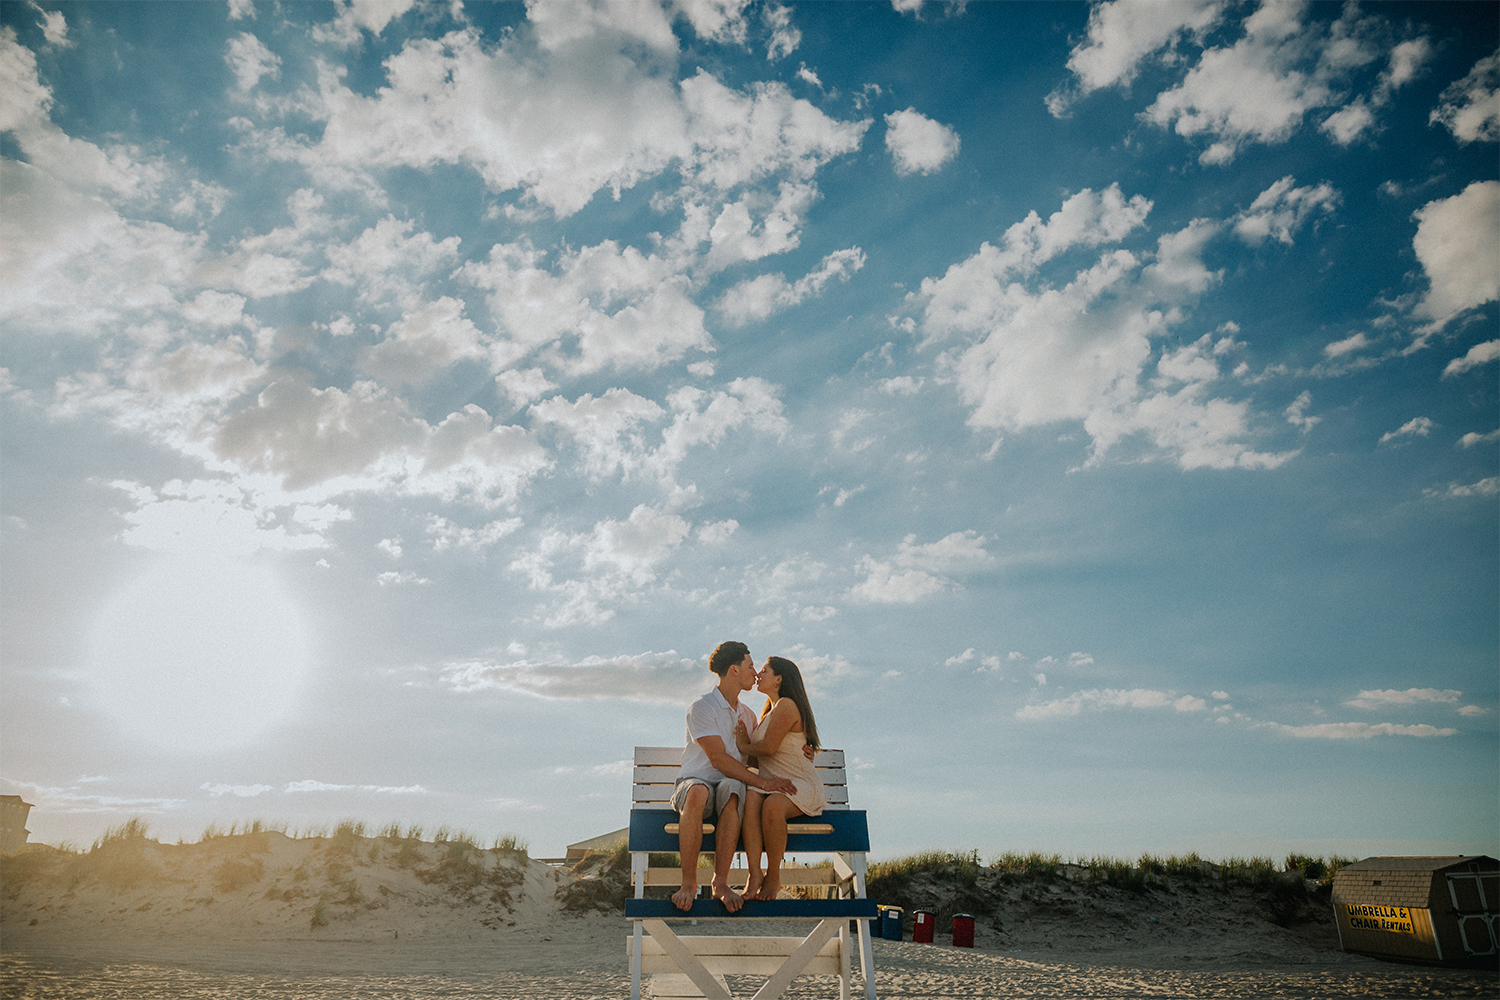 New_Jersey_Wedding_Photography_Engagement_Session_Beach_Session_Couple_026.jpg